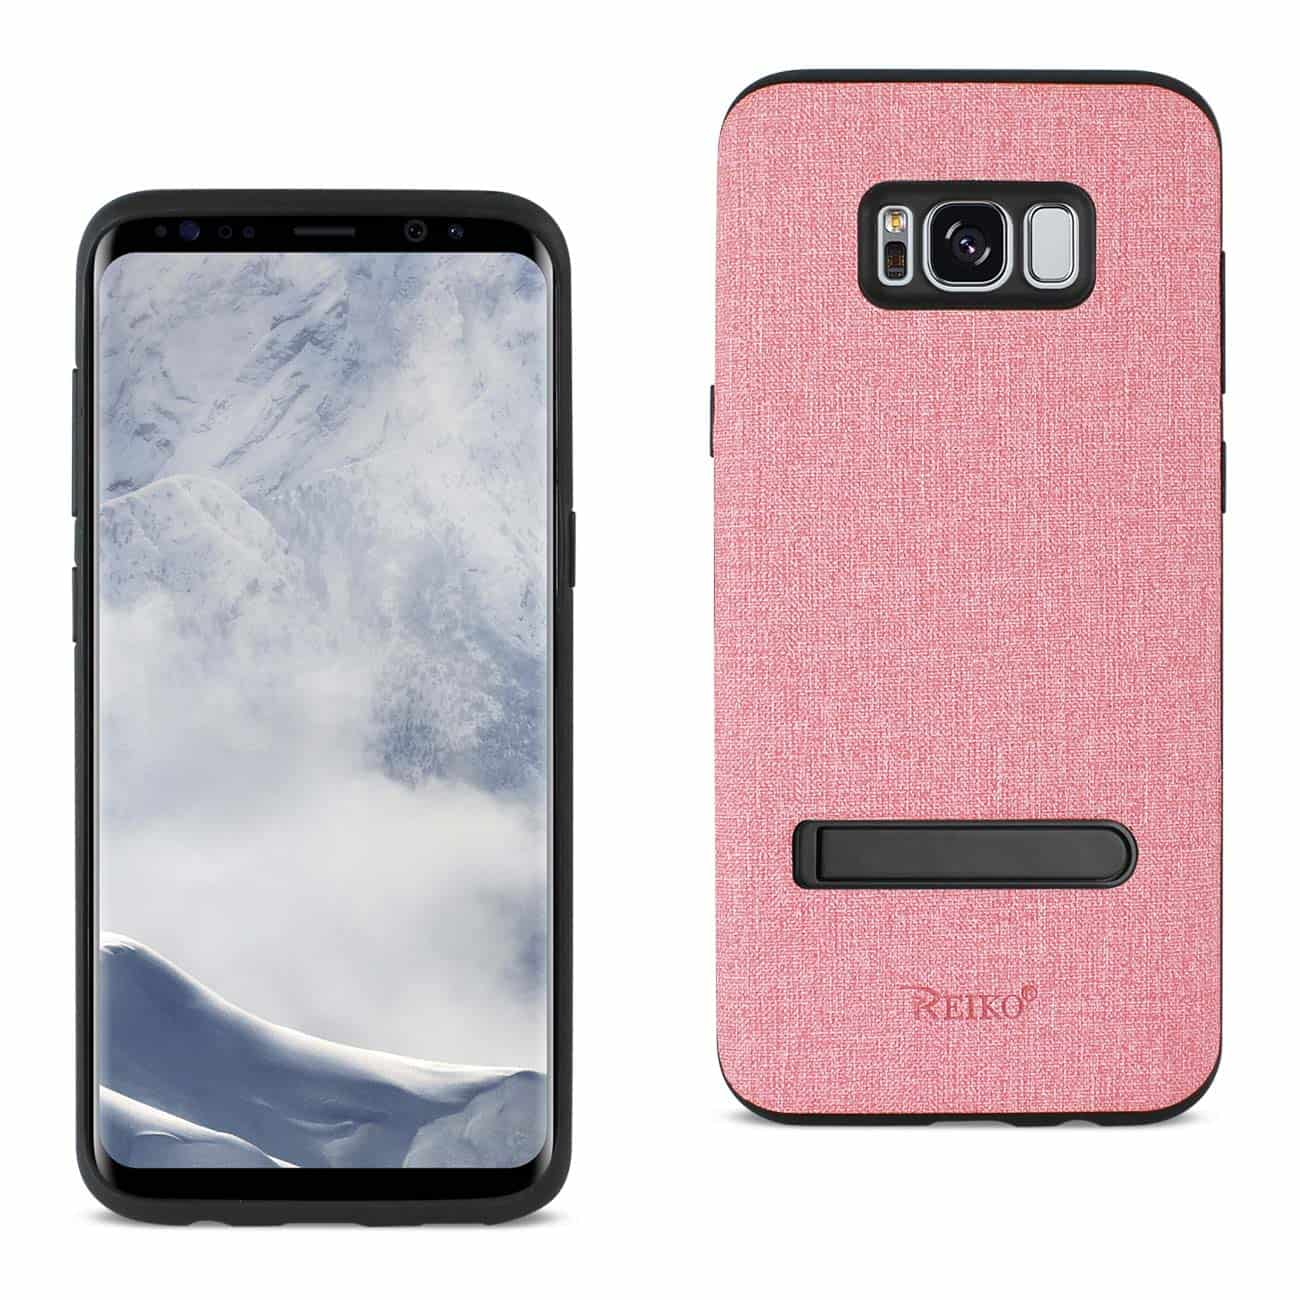 SAMSUNG GALAXY S8 EDGE/ S8 PLUS DENIM TEXTURE TPU PROTECTOR COVER IN PINK